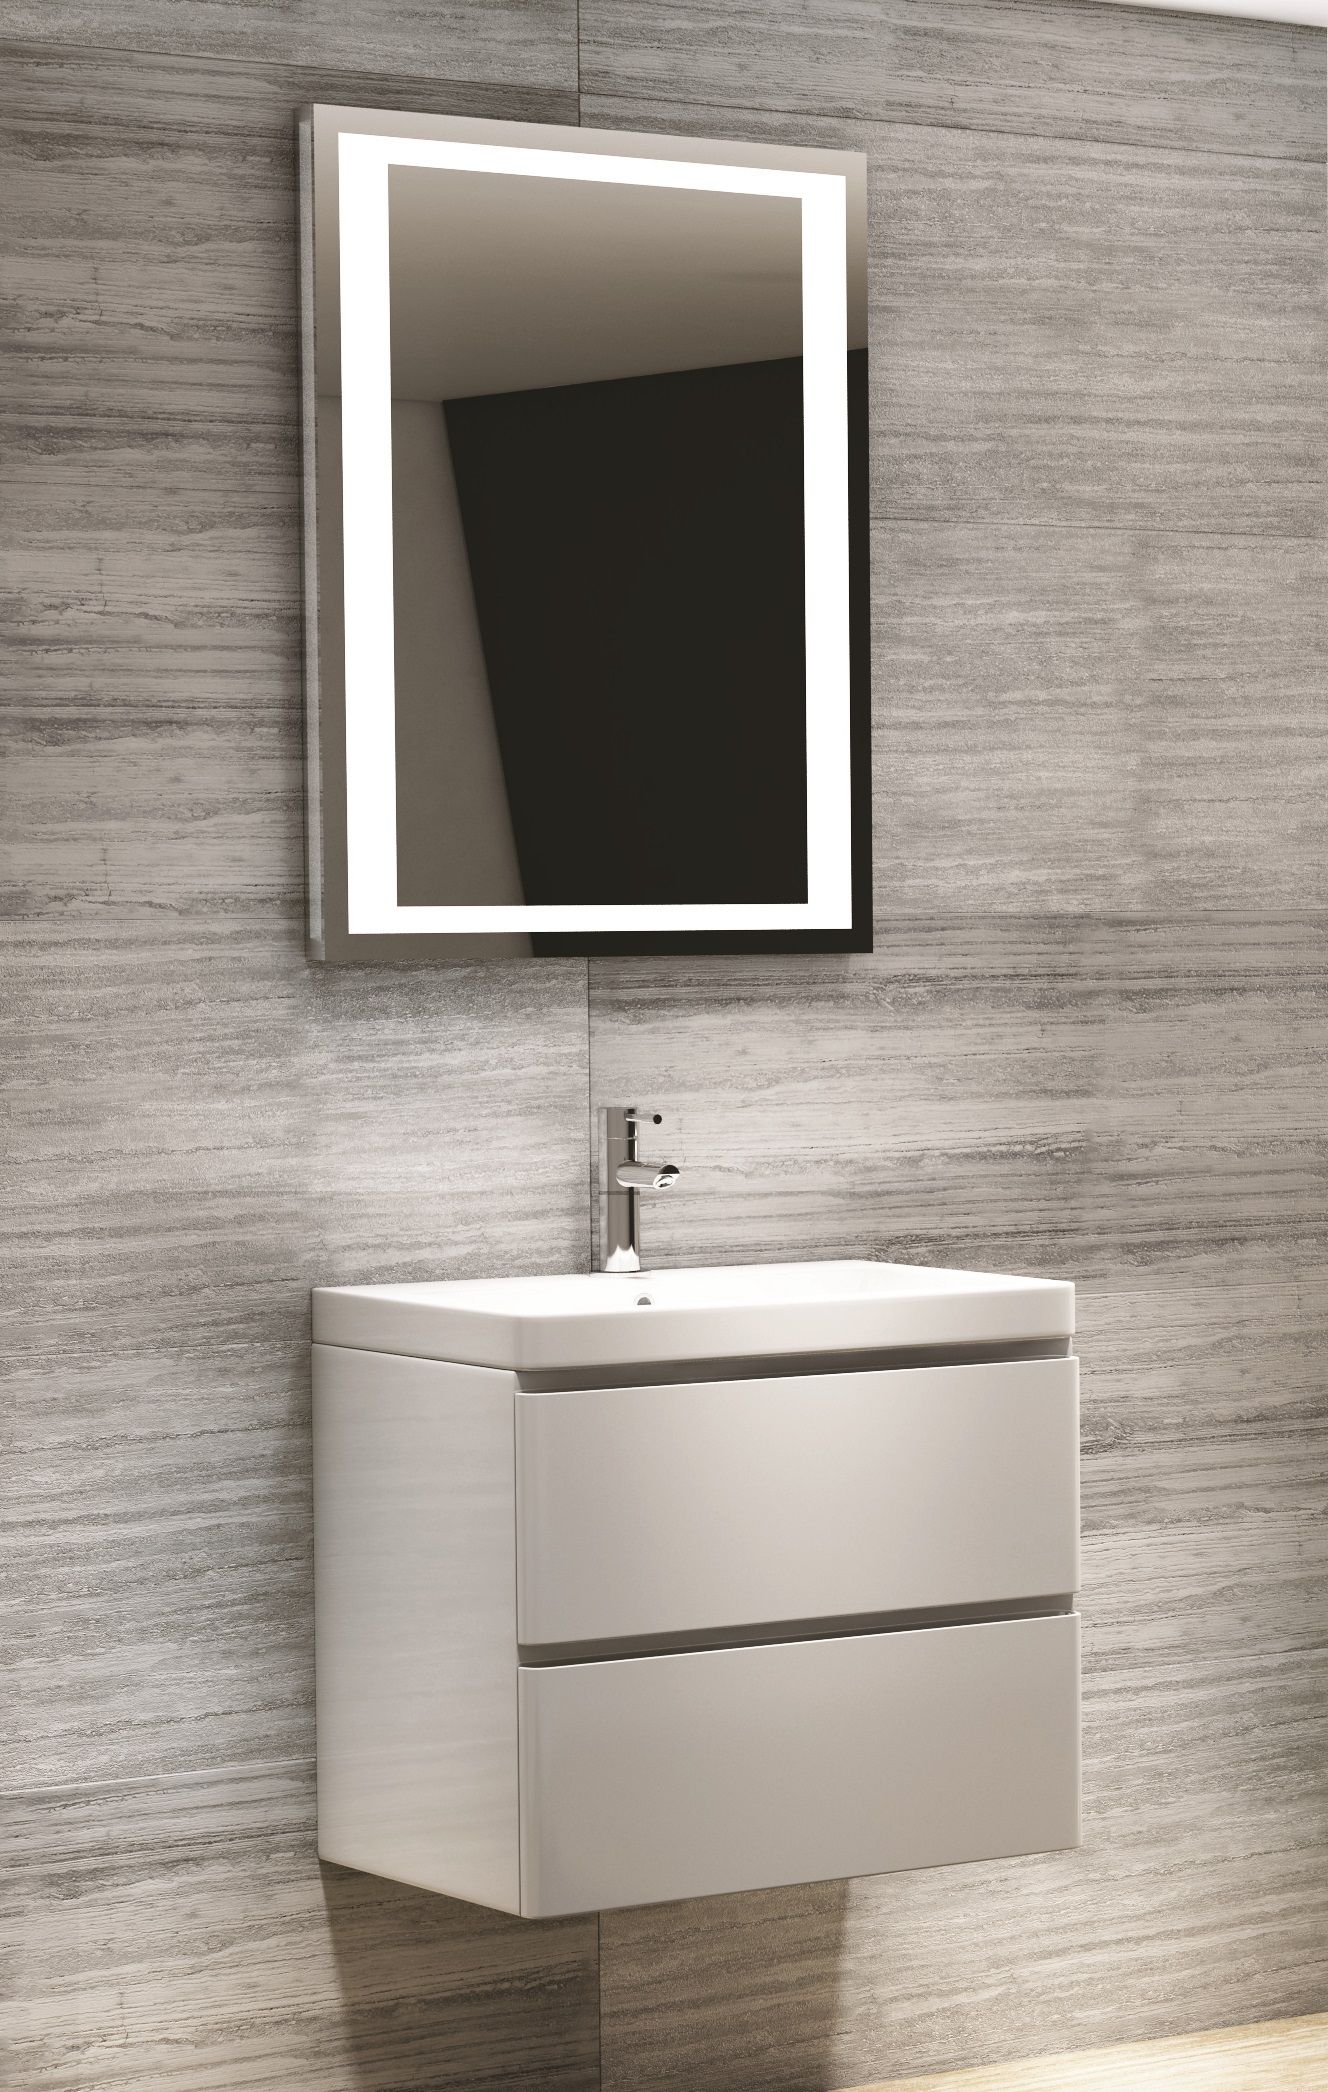 Image result for wall sinks with cupboard bathrooms in